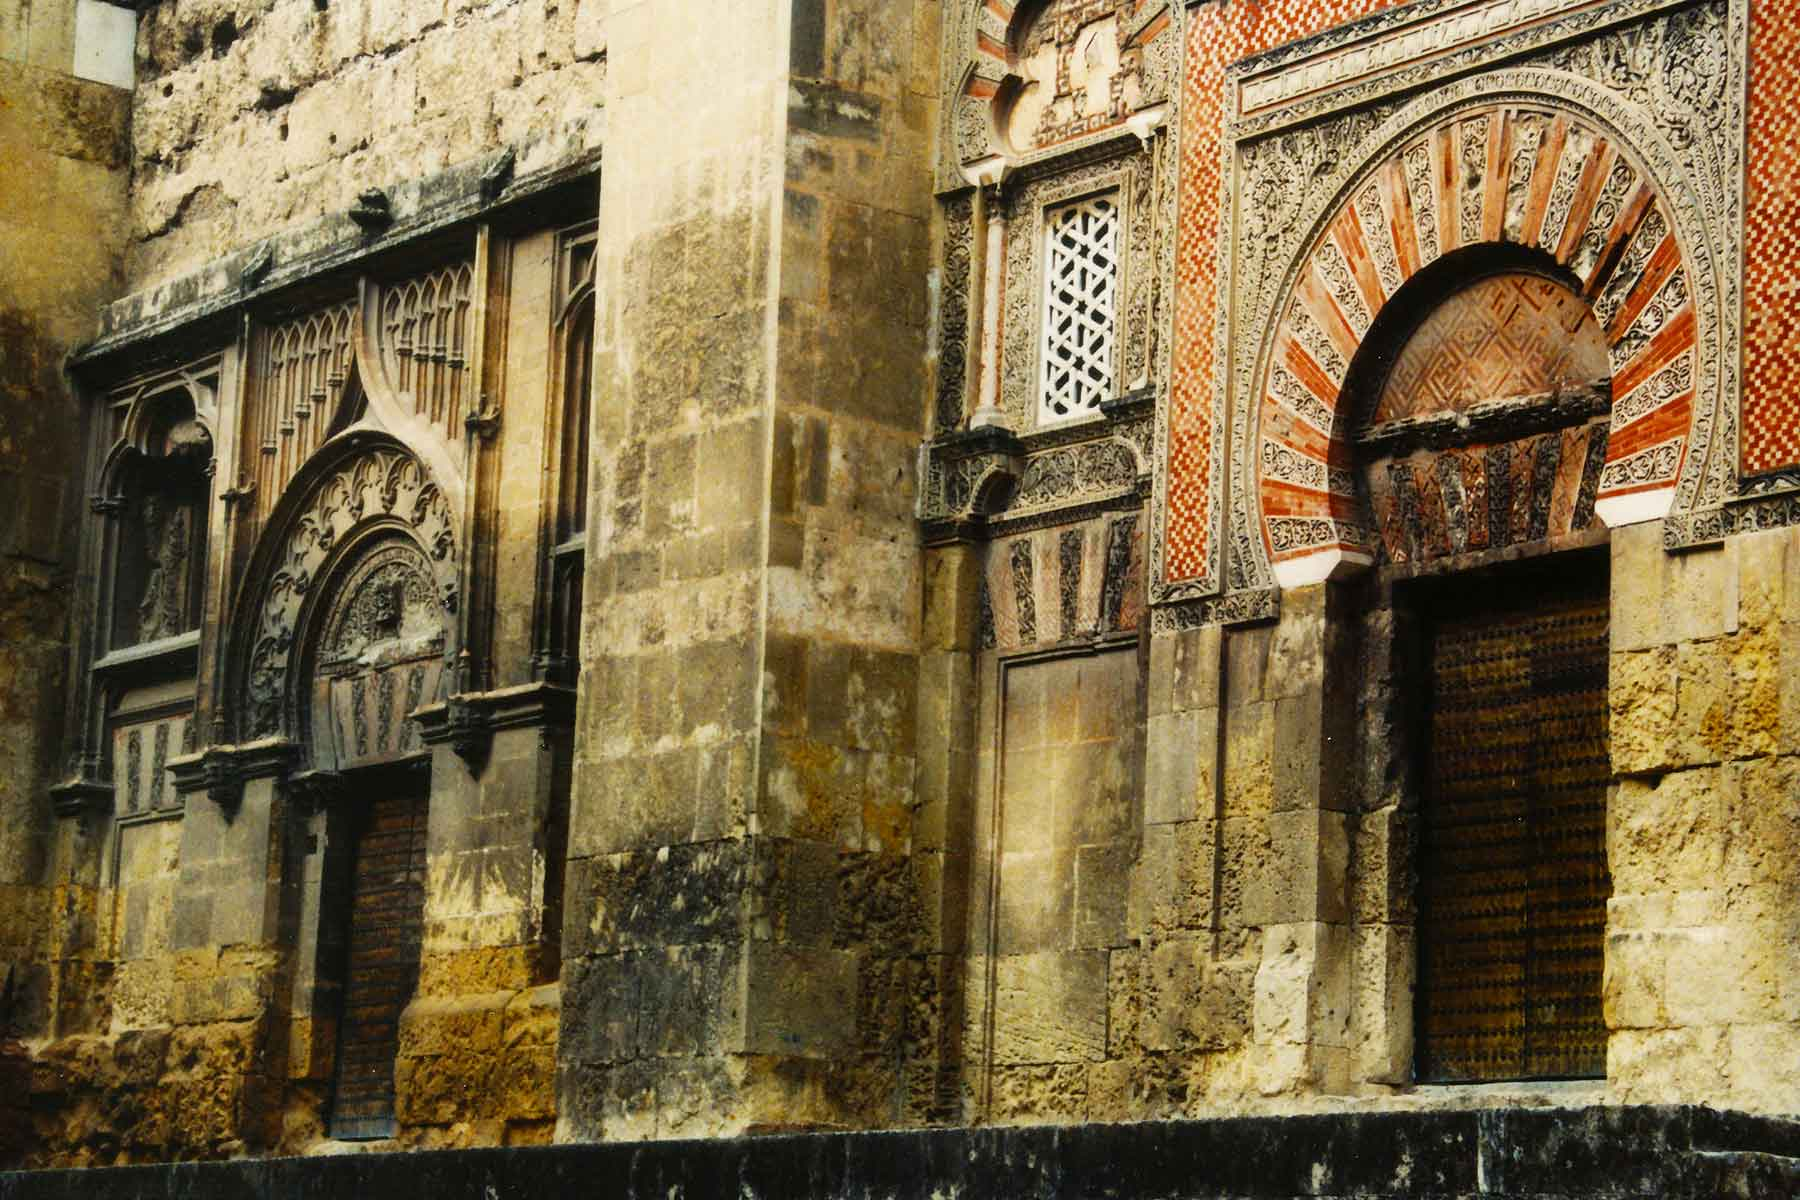 Great Mosque Cordoba - Spain Photo Journal - Steven Andrew Martin - Study Abroad 1998